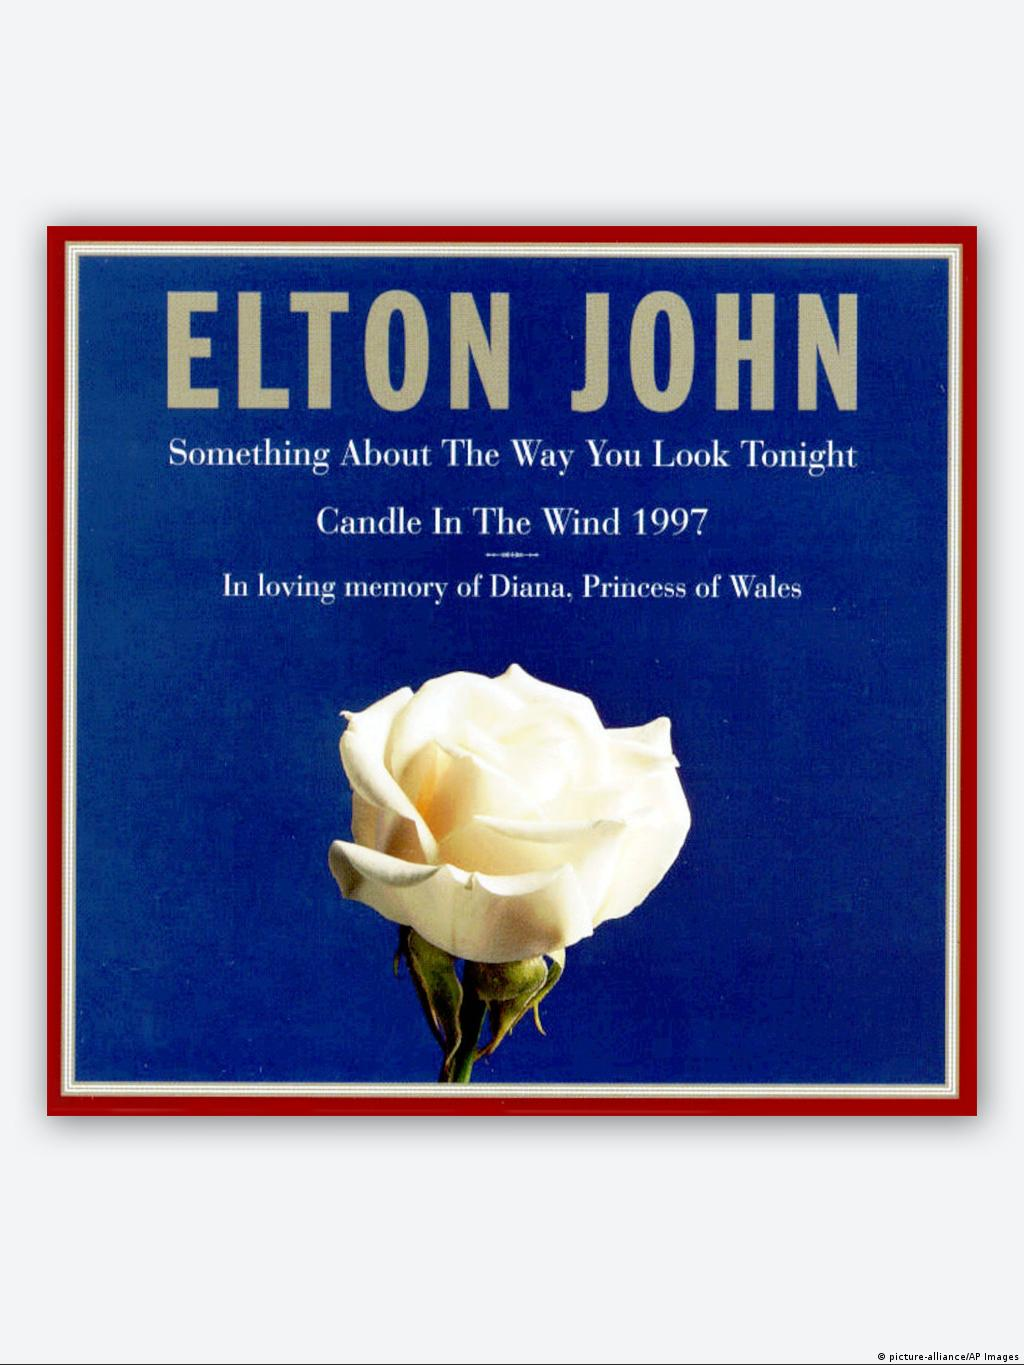 How Candle In The Wind Became An Anthem To Princess Diana